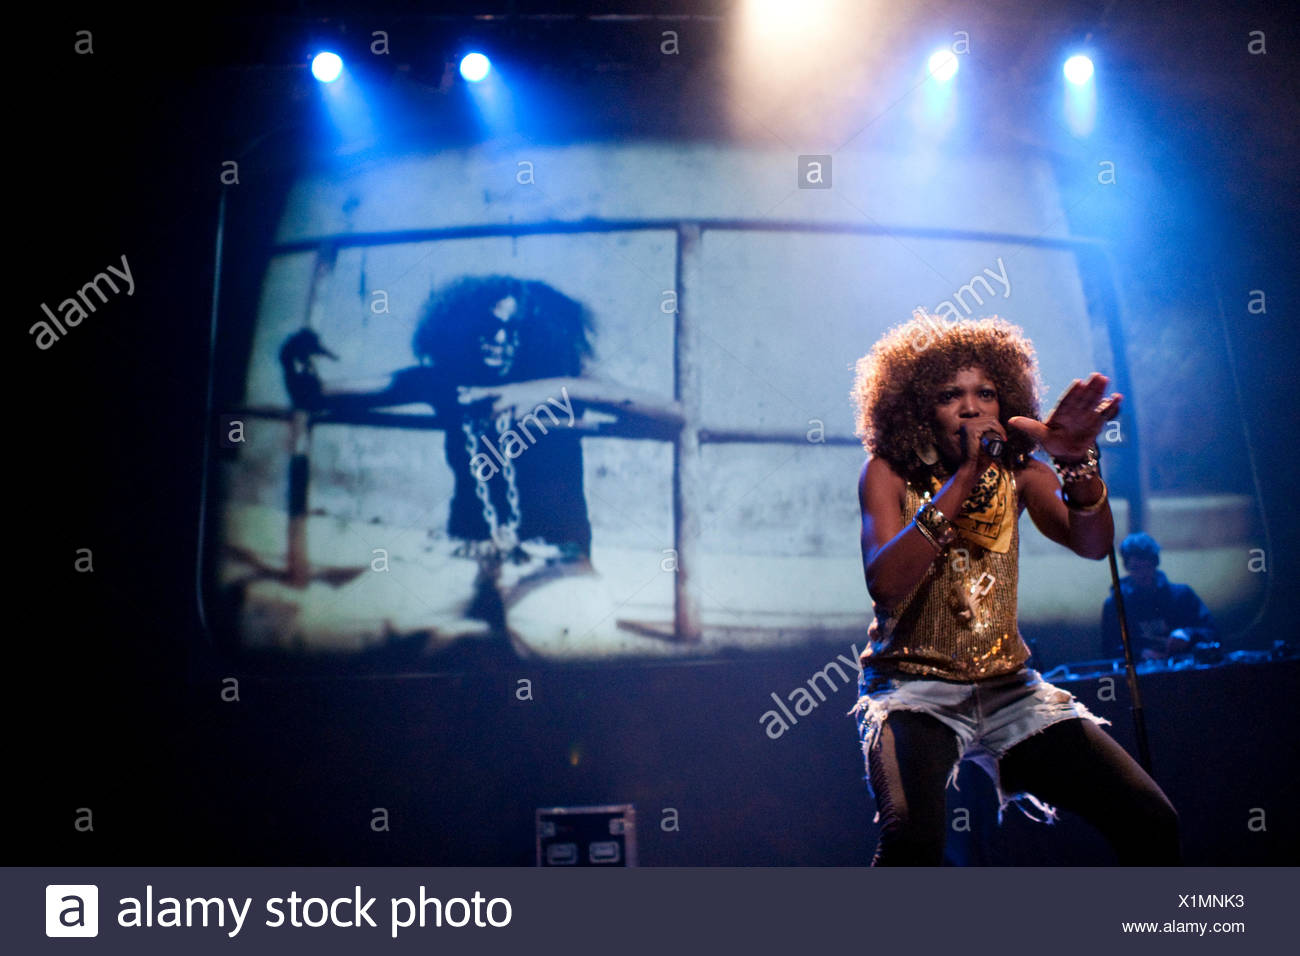 The Jamaican Meta Dancehall singer Terry Lynn live in the Suedpol Lucerne venue, Switzerland - Stock Image